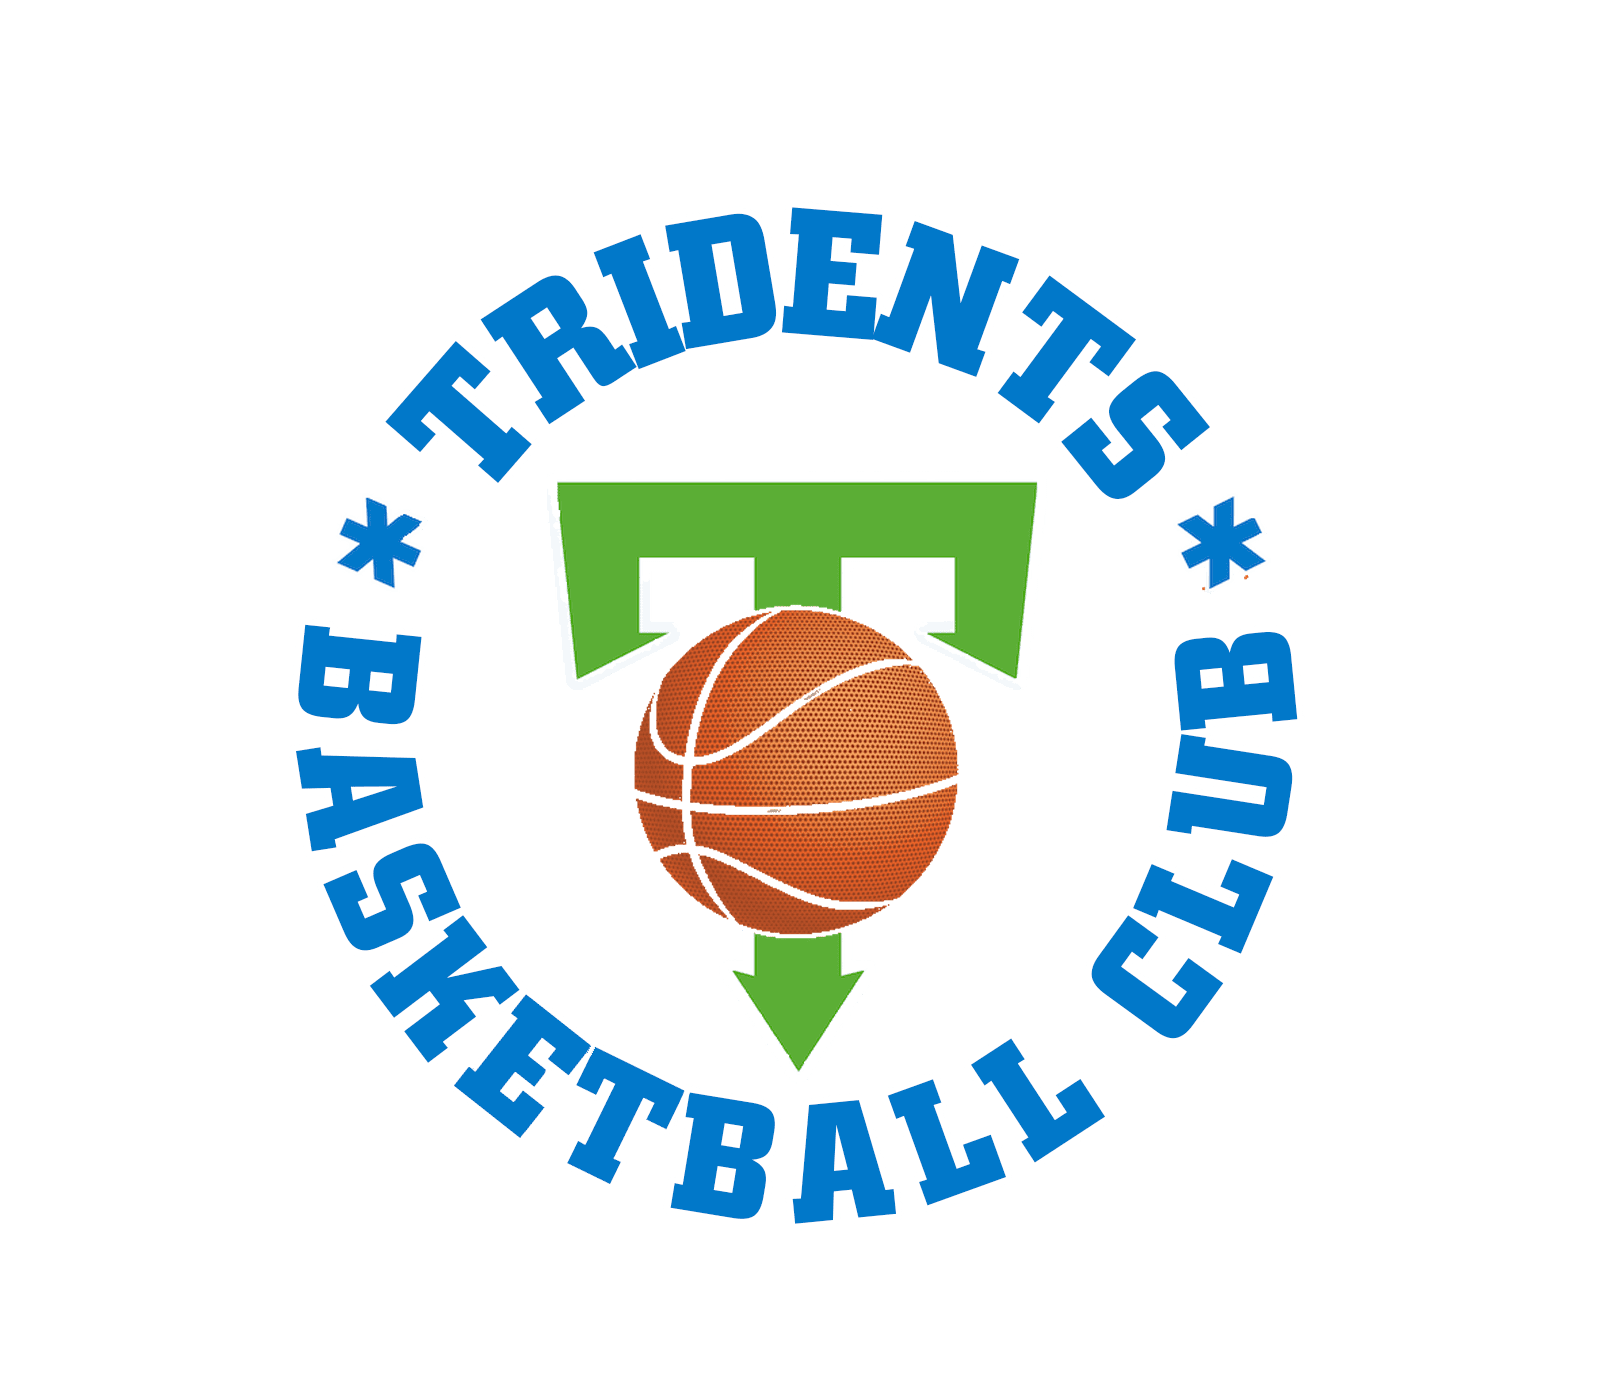 Tridents Basketball Club